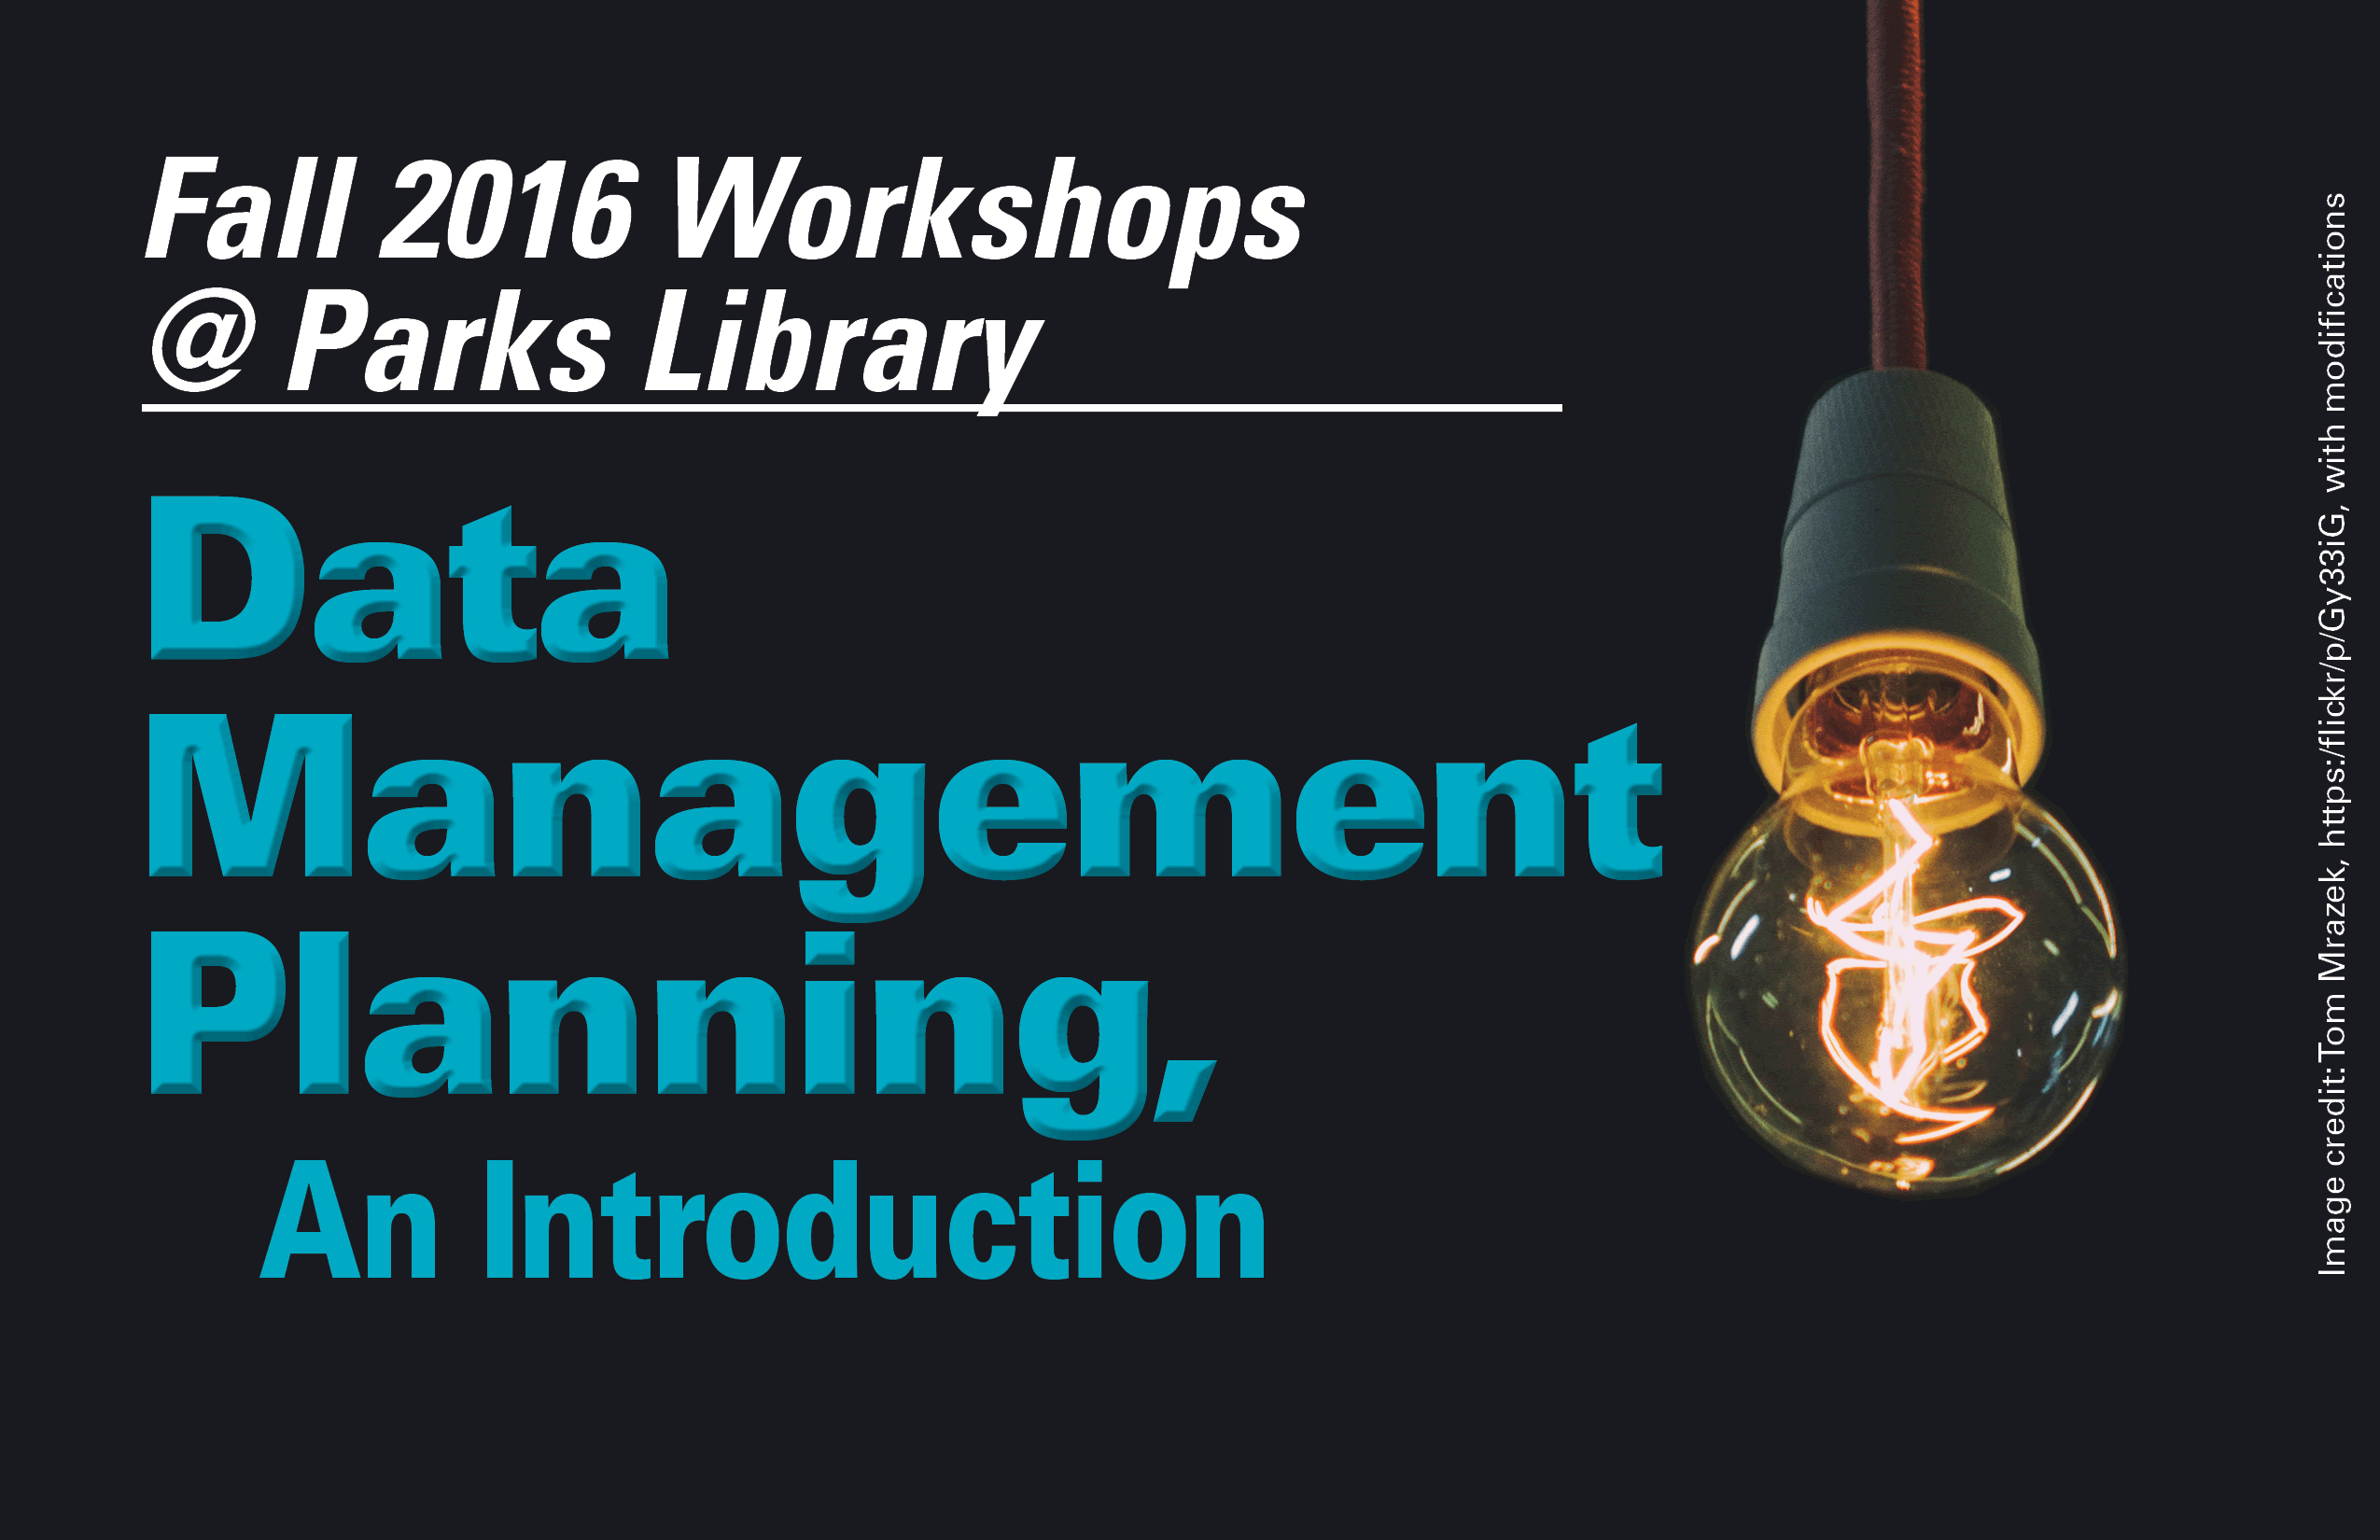 Image of lightbulb. Title: Data Management Planning, An Introduction.